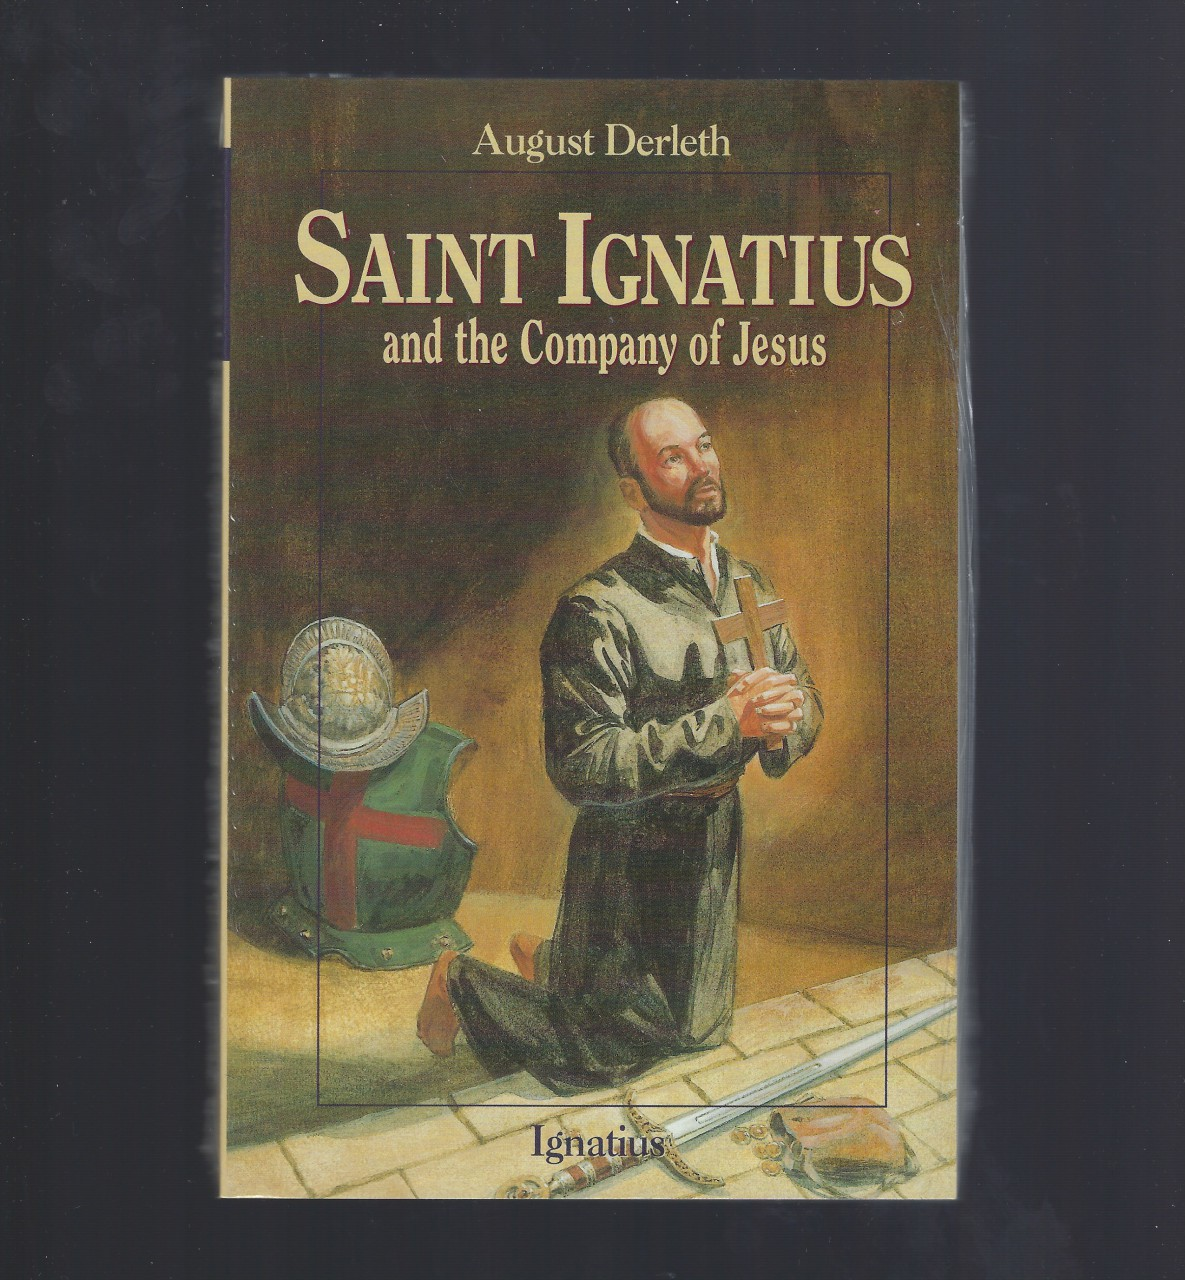 Saint Ignatius and the Company of Jesus (Vision Books), August Derleth; John Lawn [Illustrator]